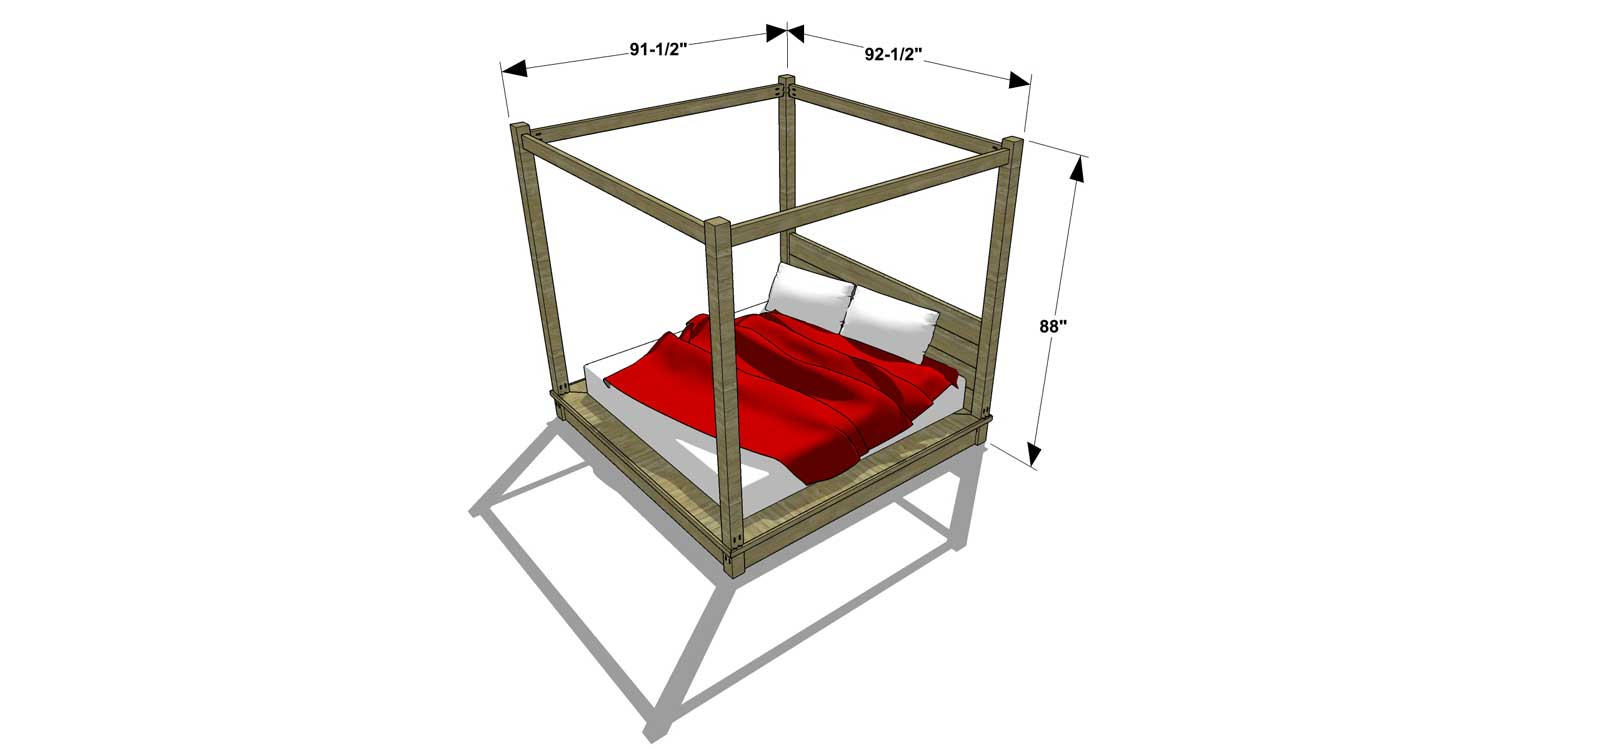 You Can Build This! Easy DIY Plans from The Design Confidential Free DIY Furniture Plans  sc 1 st  The Design Confidential & Free DIY Furniture Plans // How to Build a 4 Post Canopy Bed - The ...